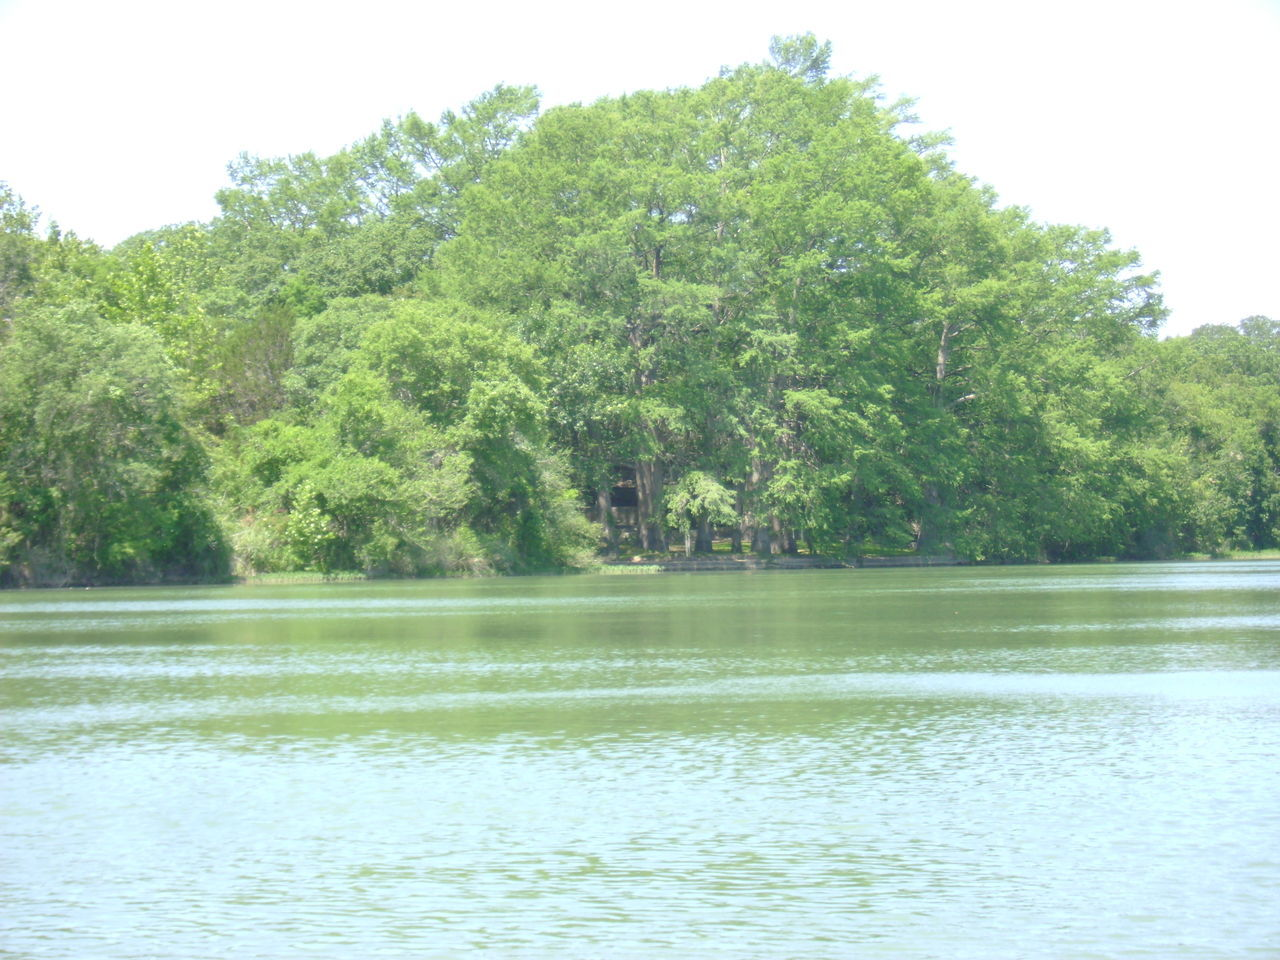 tree, water, nature, beauty in nature, lake, tranquil scene, reflection, growth, no people, outdoors, tranquility, day, scenics, forest, sky